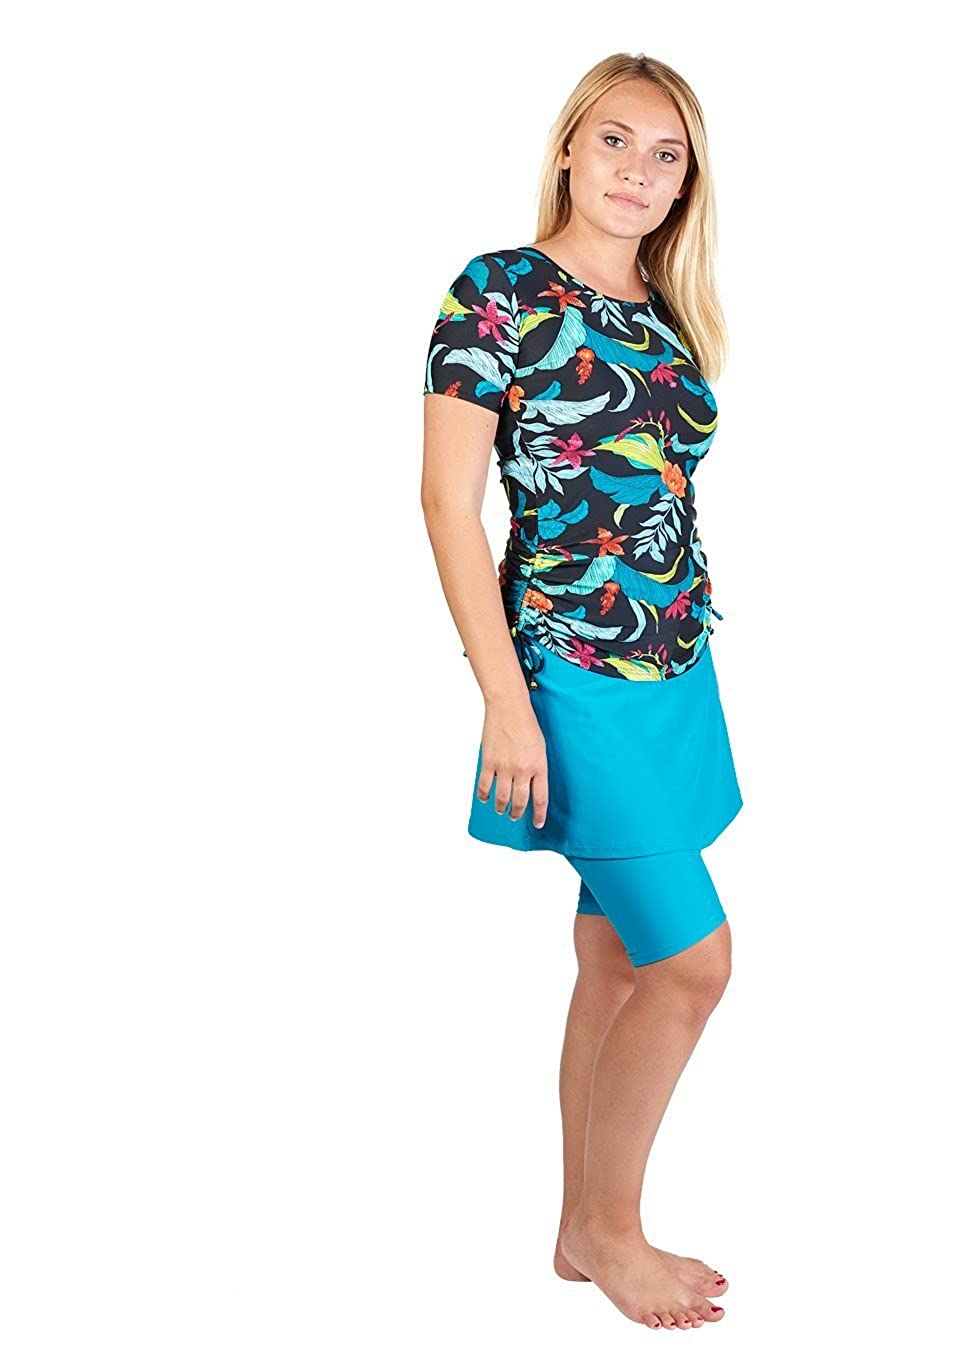 138102114b6b0 STYLISH AND MODEST - bright, patterned modest swimwear you will be excited  to wear! ADJUSTABLE FIT - the shirt features drawstrings on either side ...